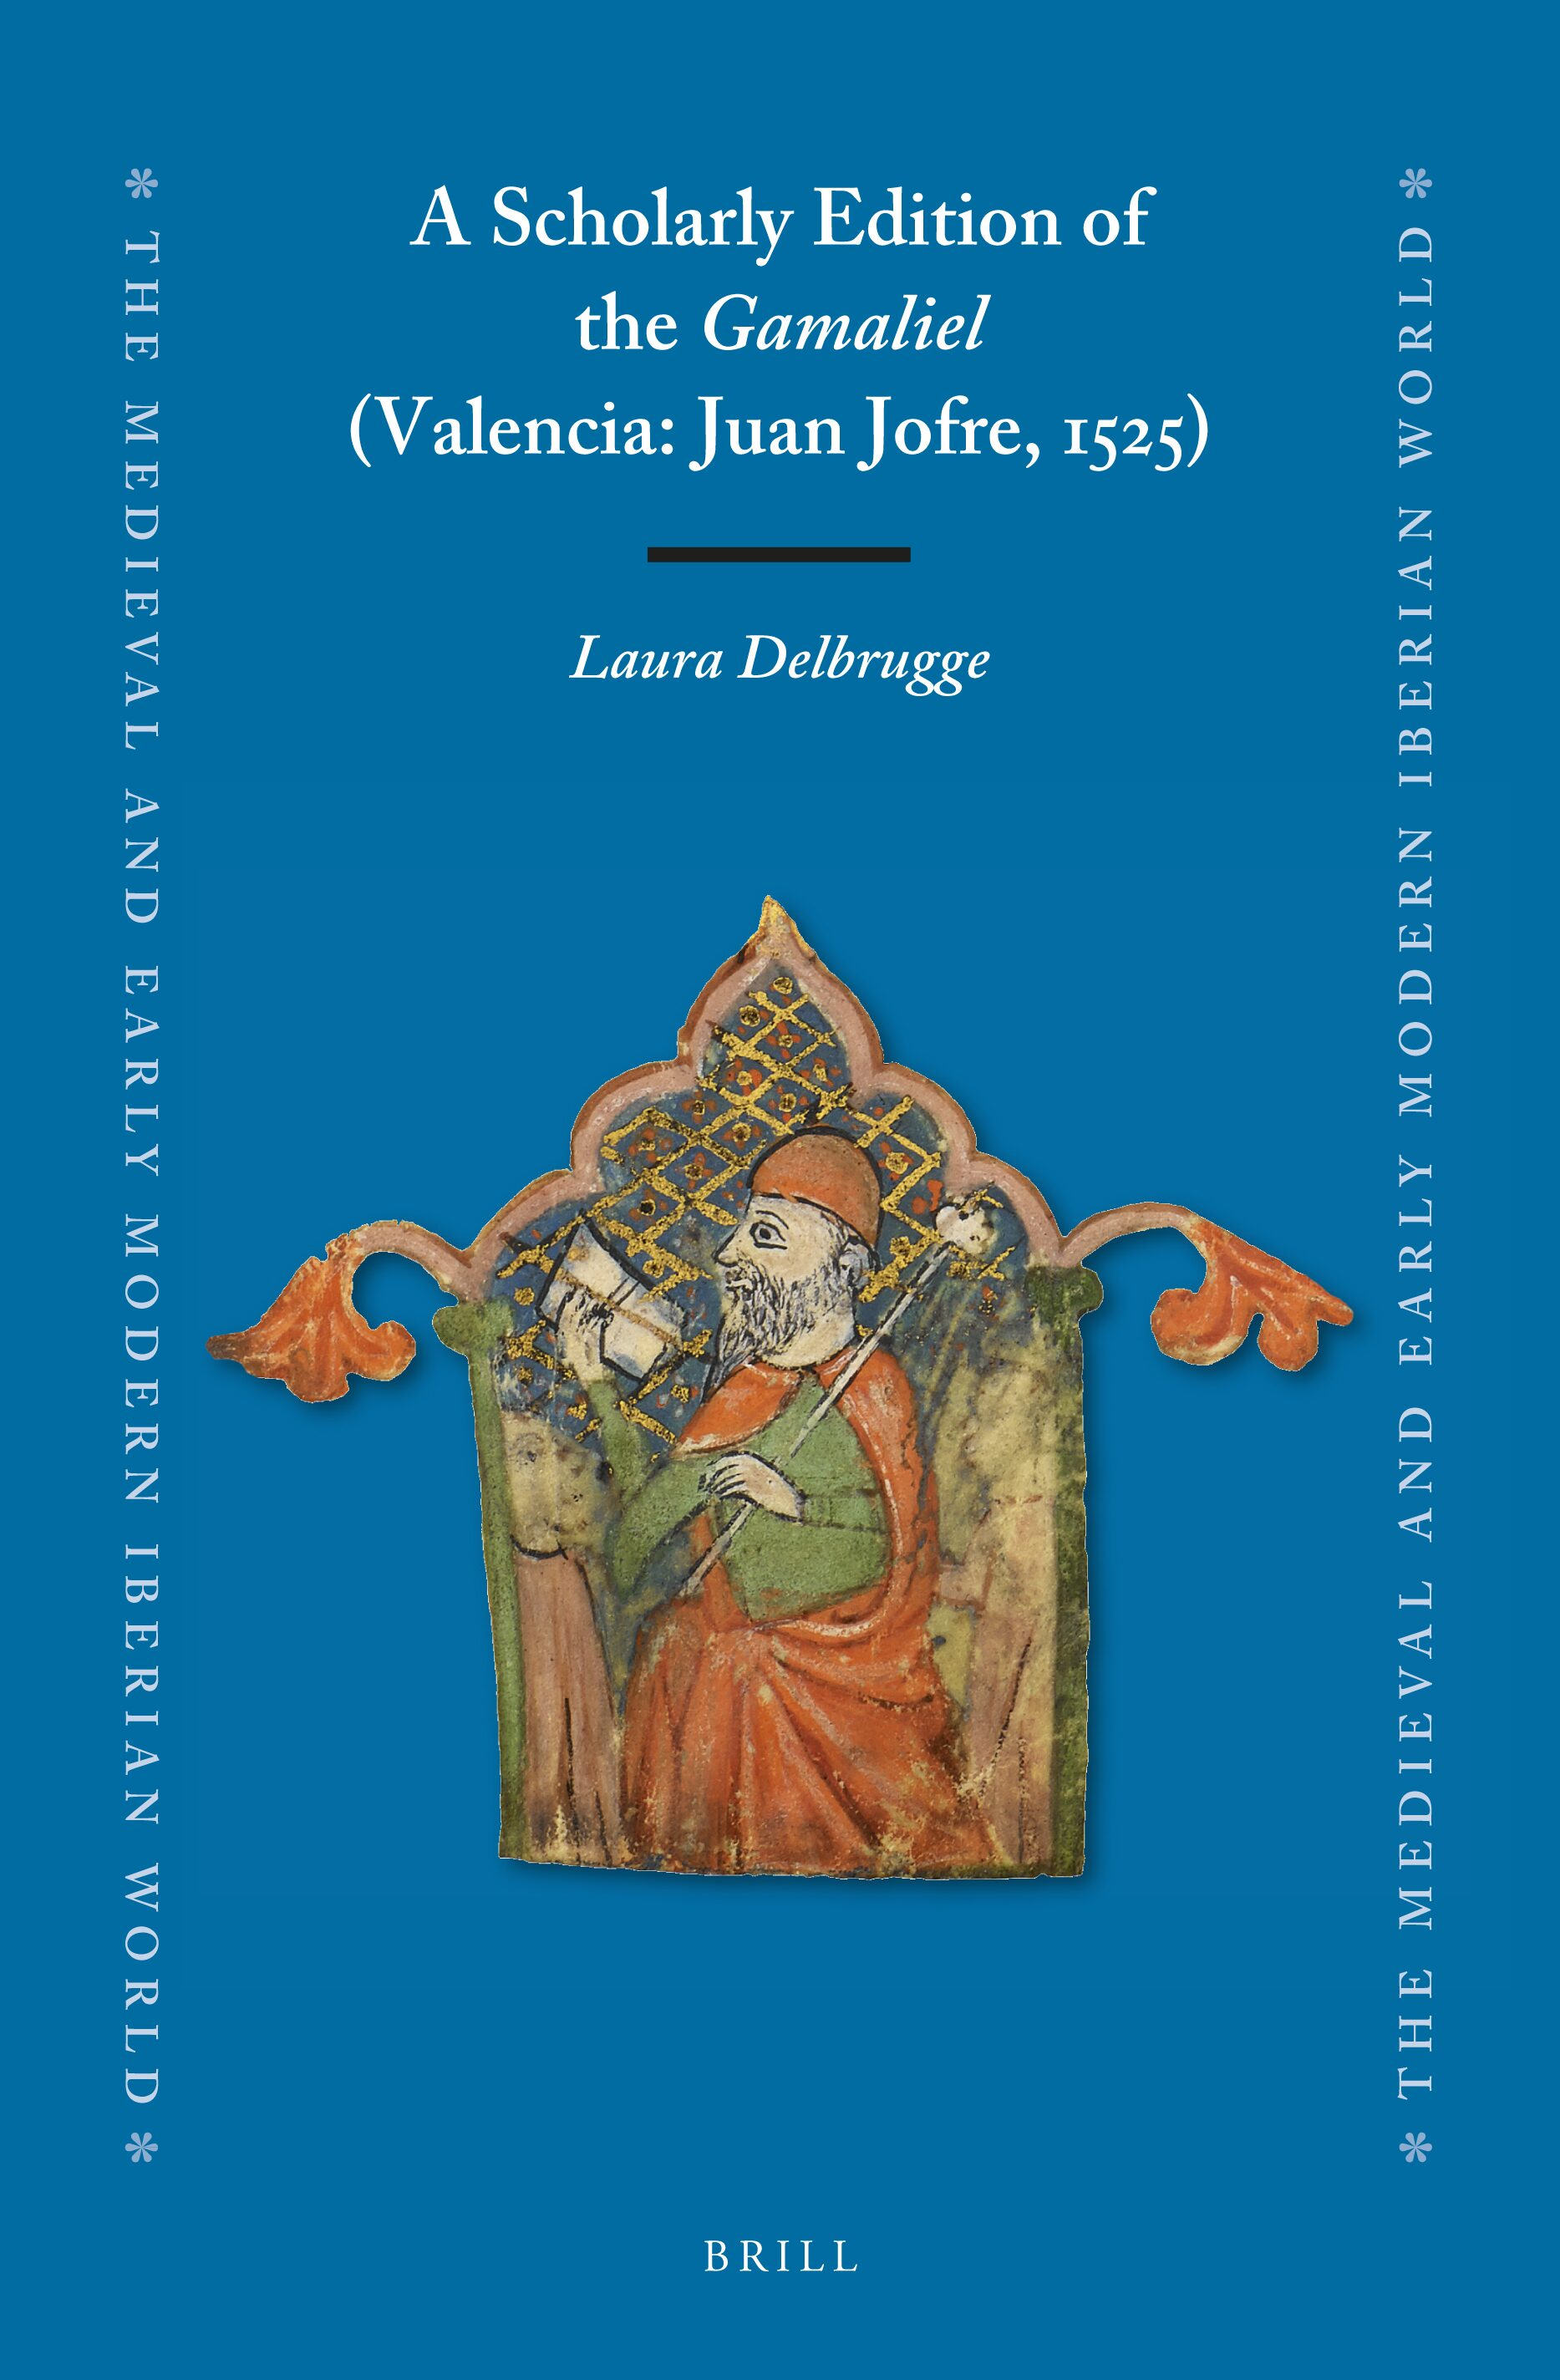 A Scholarly Edition Of The Gamaliel Valencia Juan Jofre 1525 In A Scholarly Edition Of The Gamaliel Valencia Juan Jofre 1525